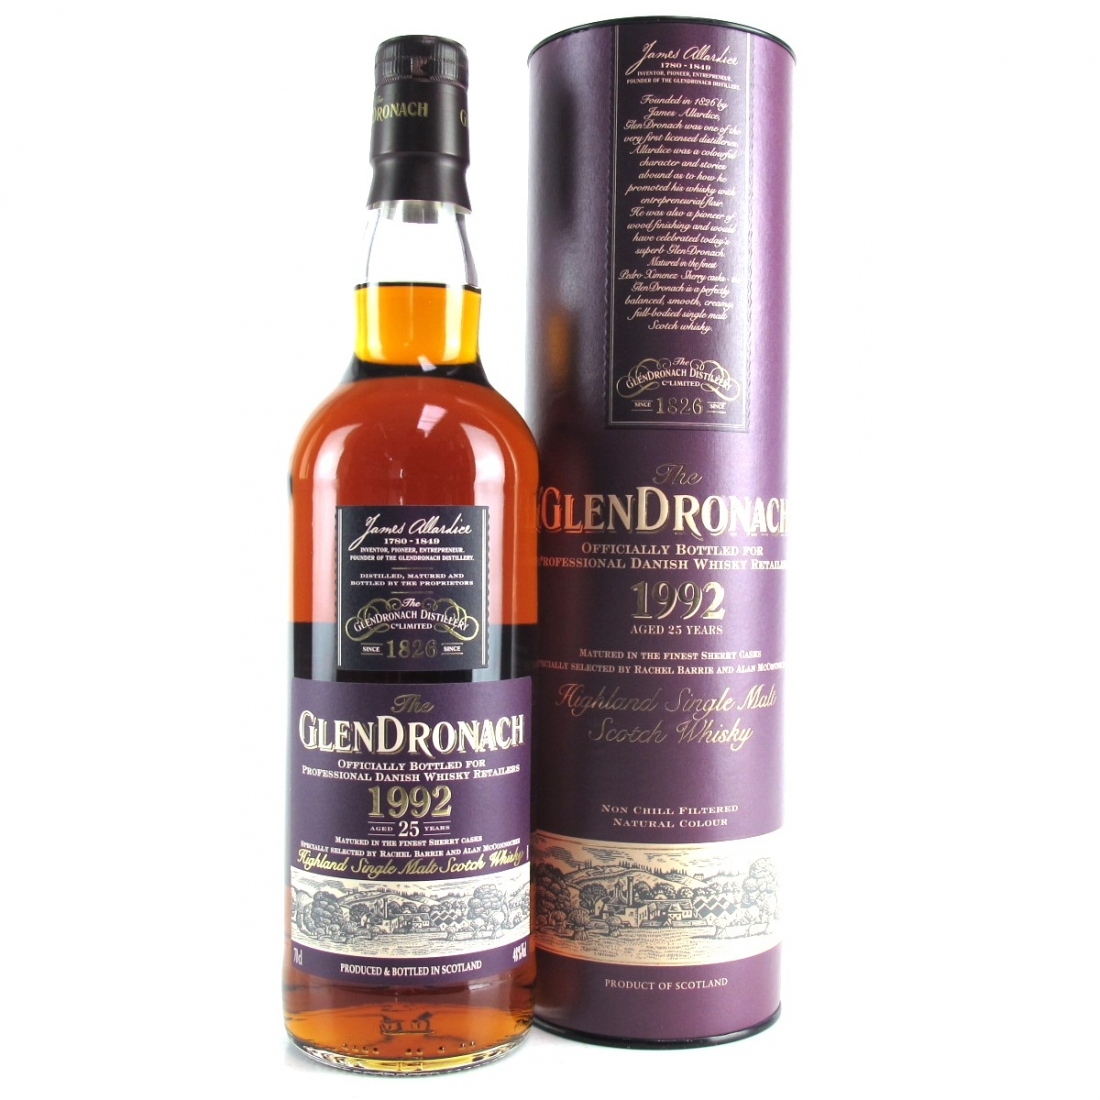 Glendronach 1992 Sherry Cask 25 Year Old / Danish Retail Exclusive